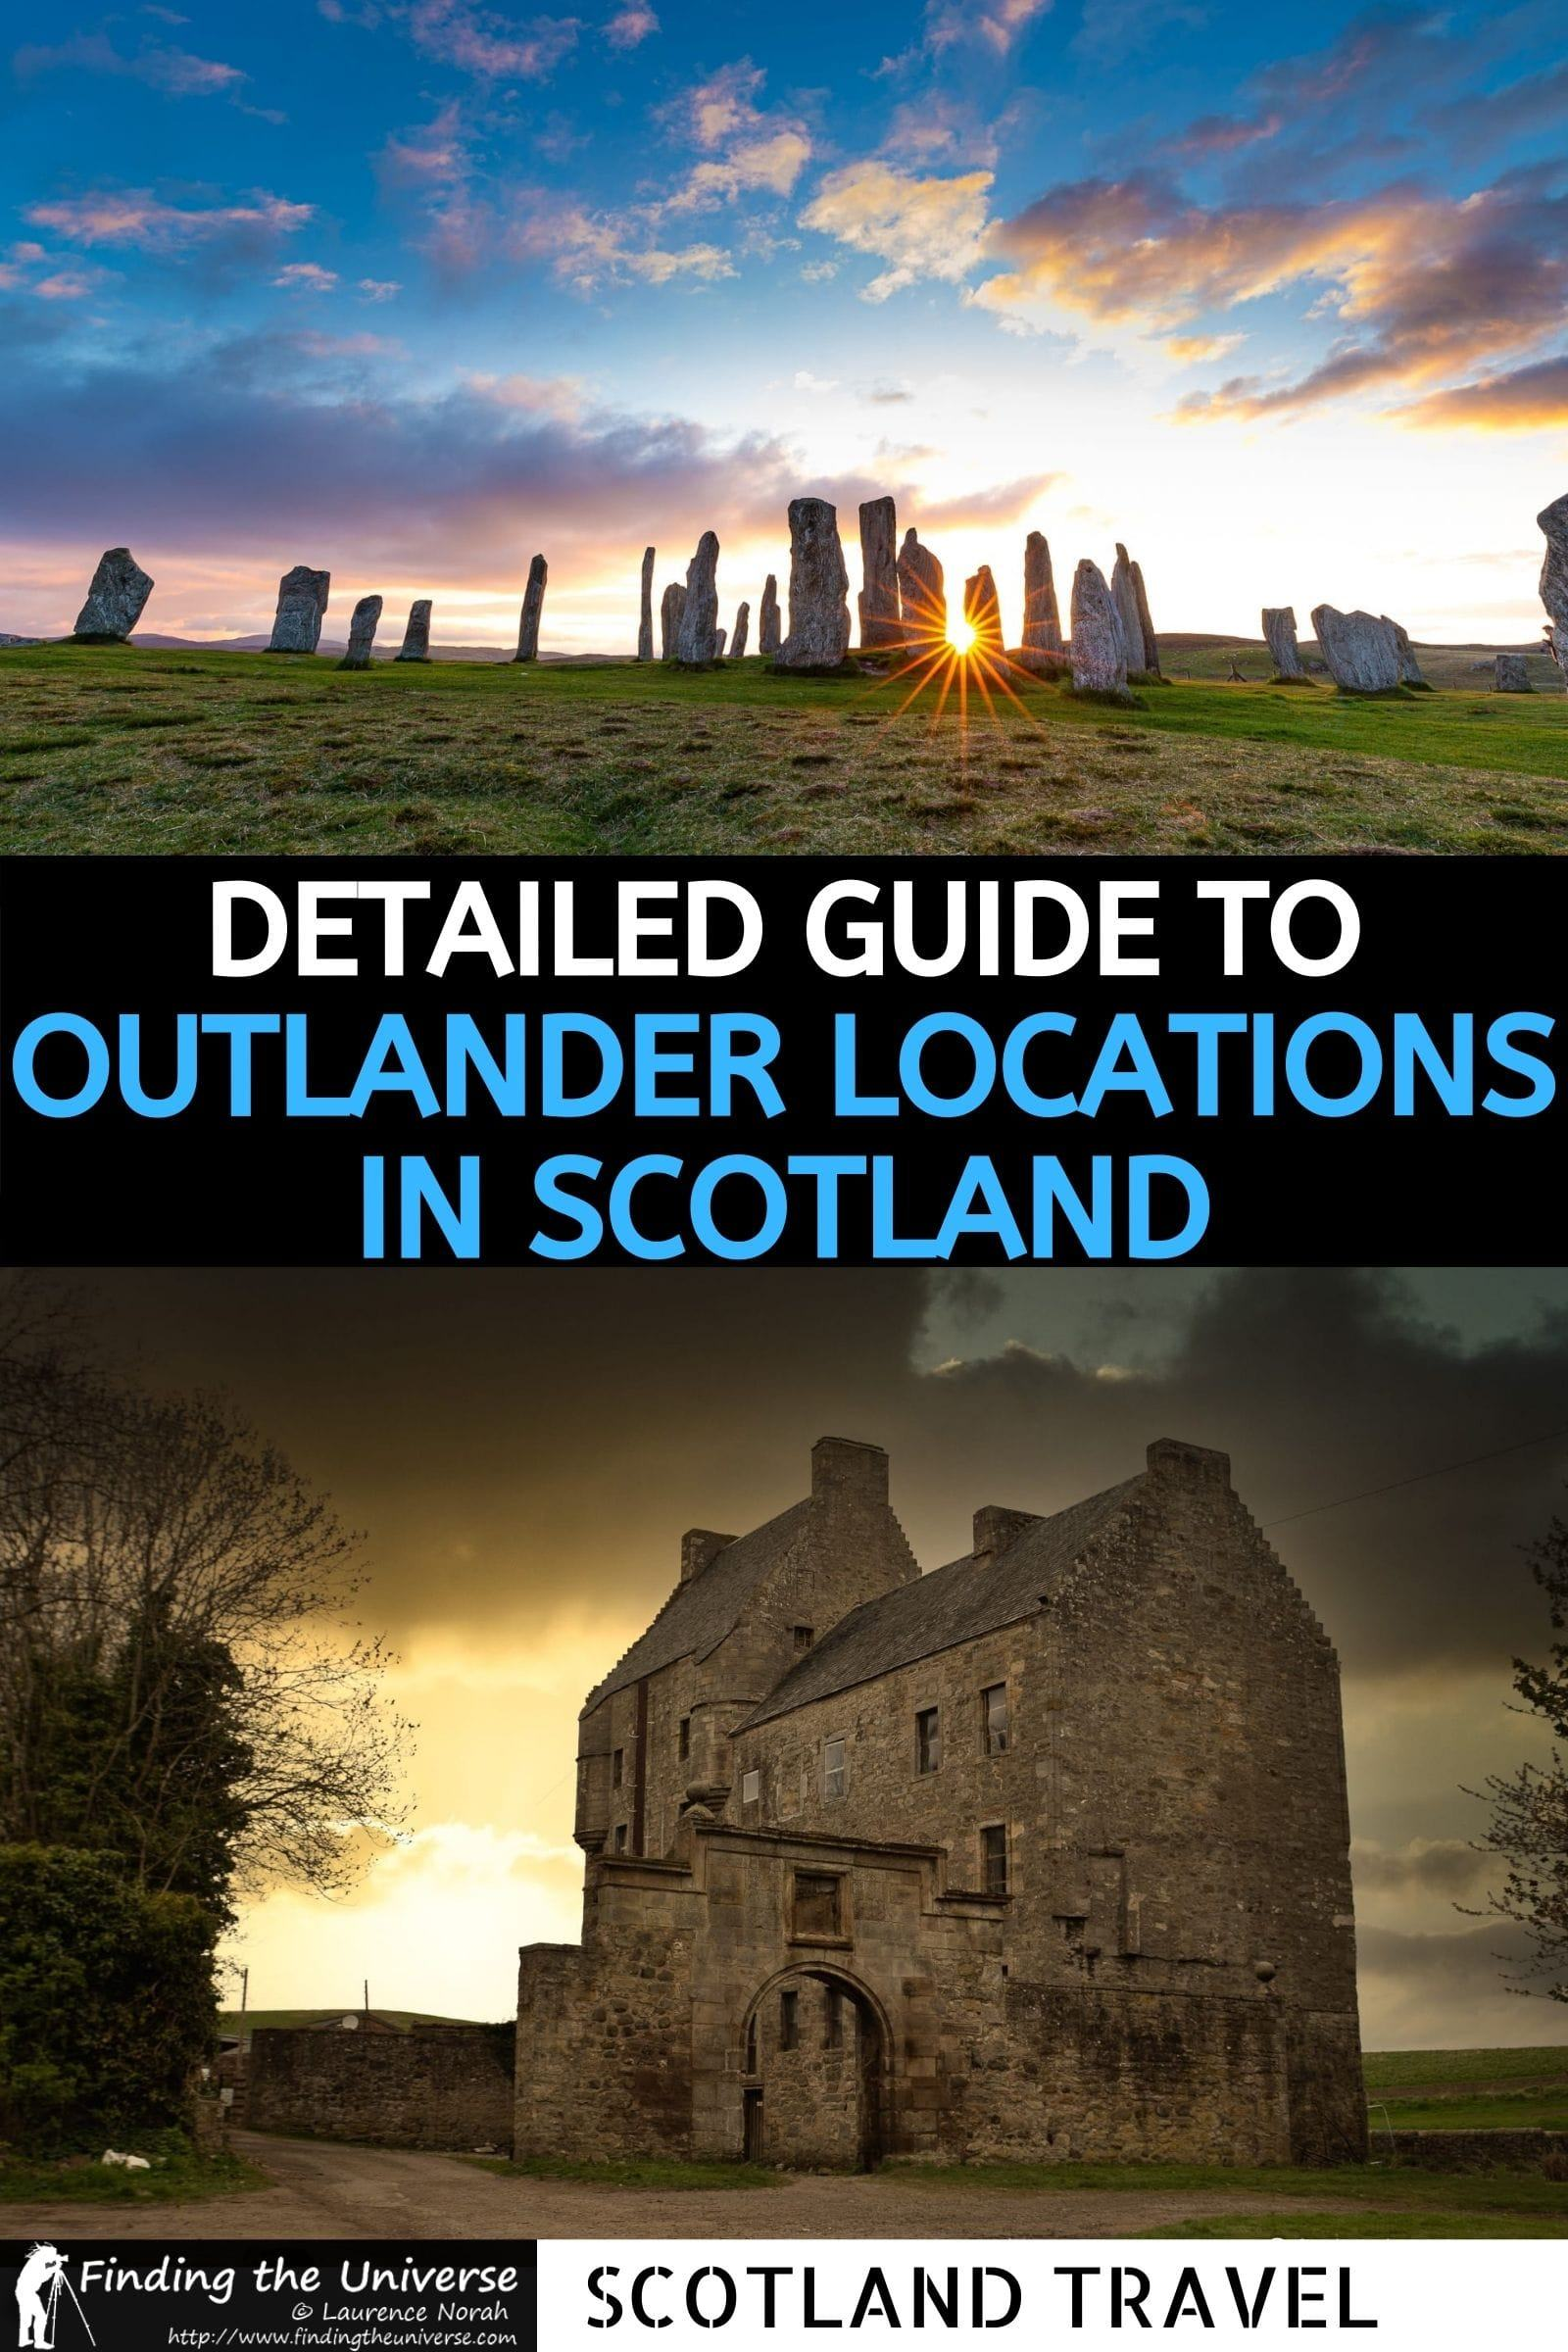 Detailed guide to 40+ Outlander Filming Locations in Scotland. Details of which scenes were filmed where, tips on visiting them + map!